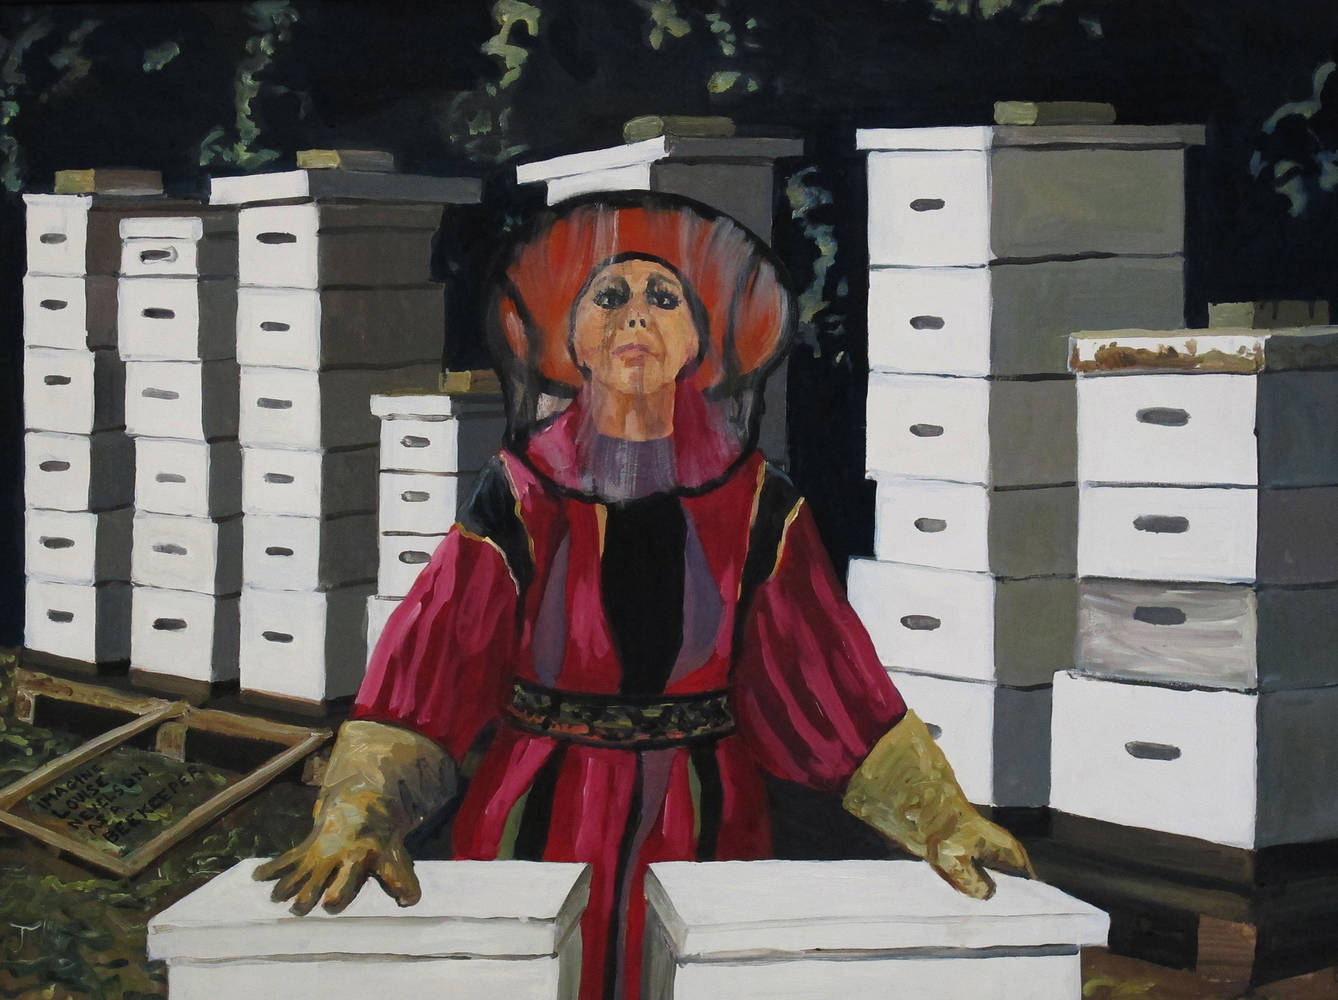 Oil painting  Imagine Louise Nevelson As a Beekeeper, 2012 by David  Maxim